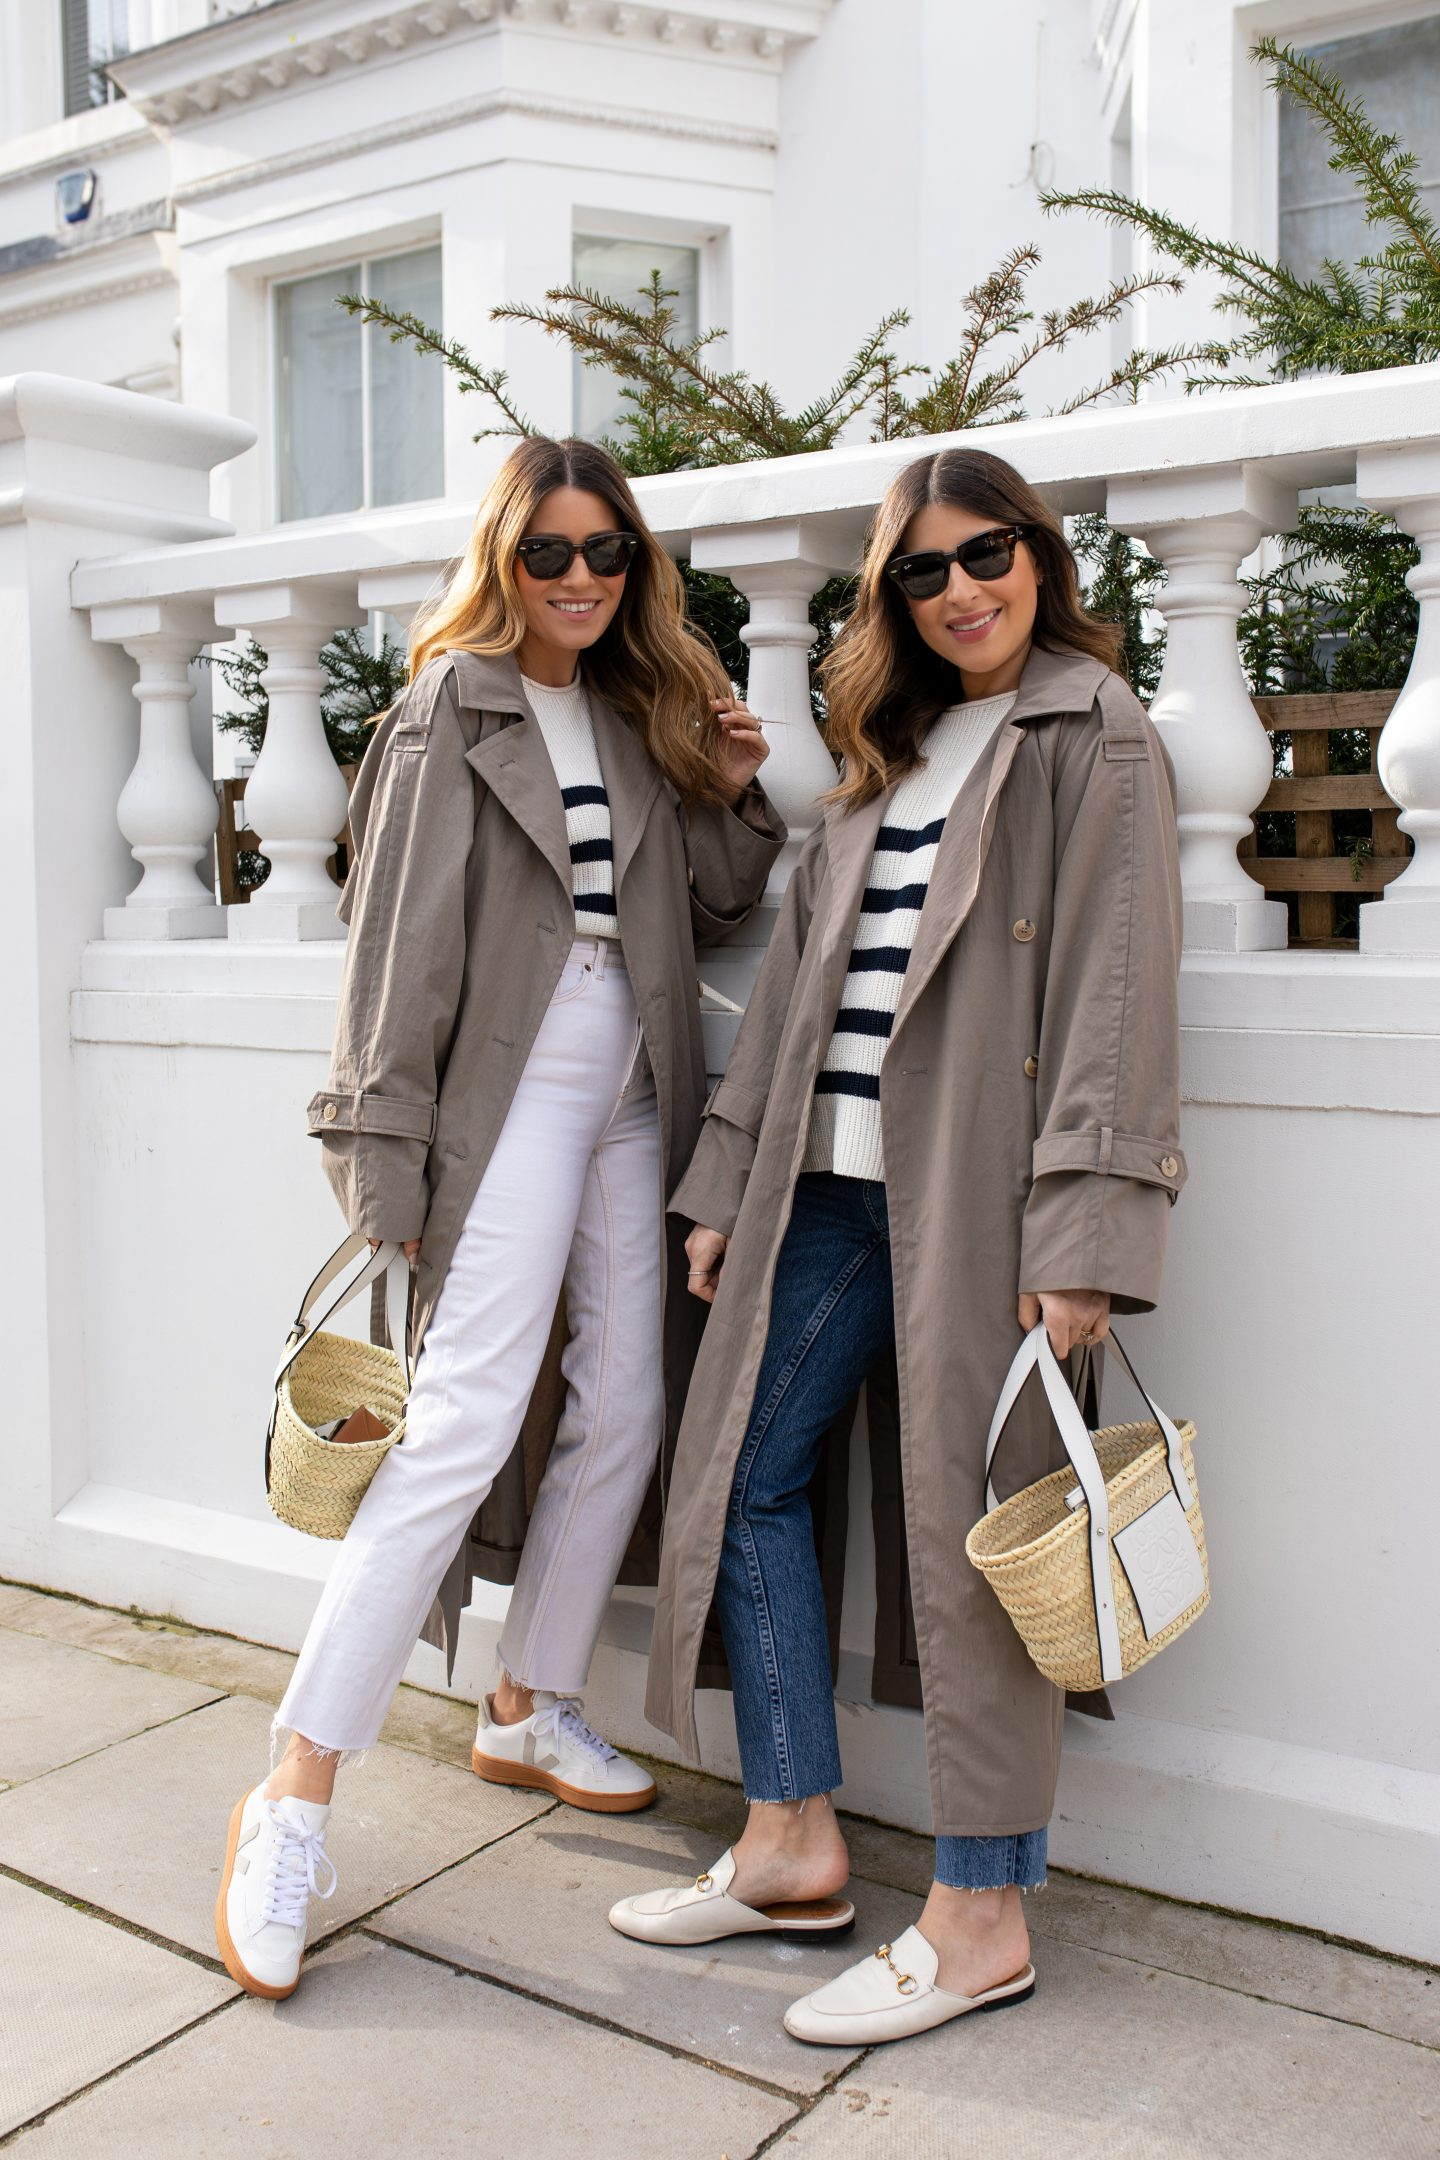 AD | GETTING SPRING WARDROBE READY WITH NET A PORTER